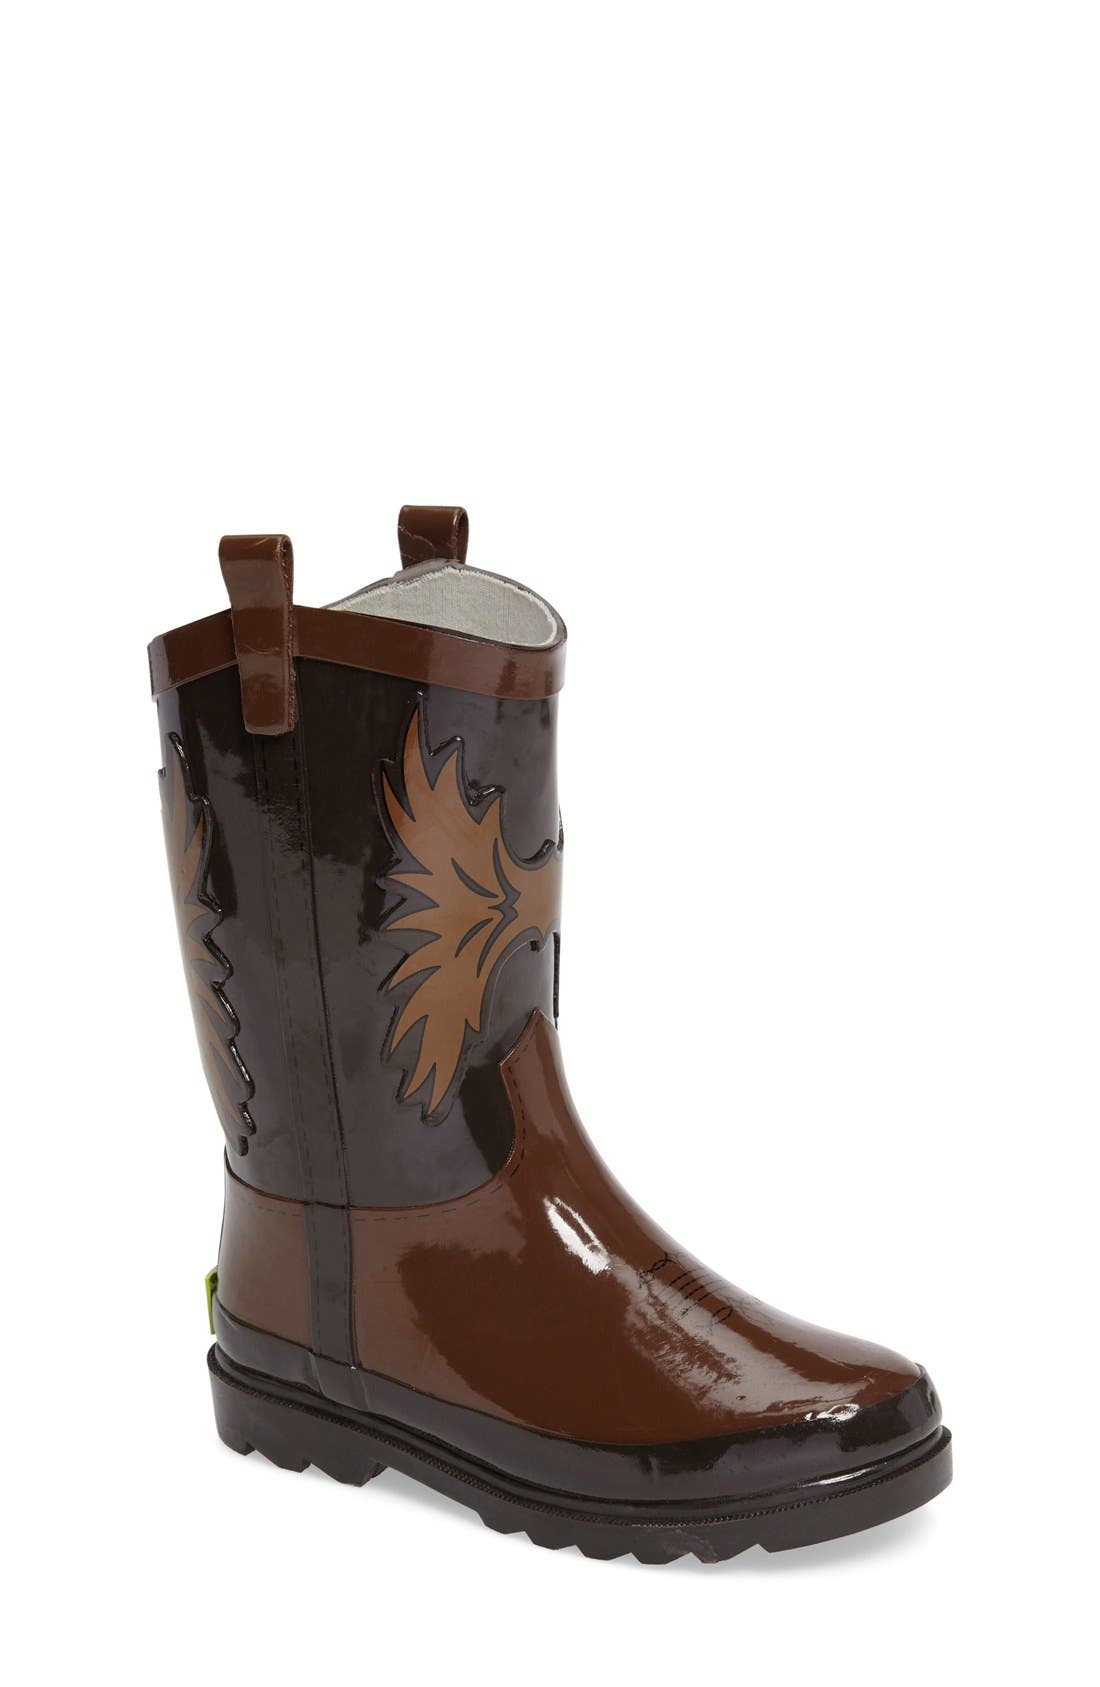 Cowboy Waterproof Rain Boot,                         Main,                         color, Brown